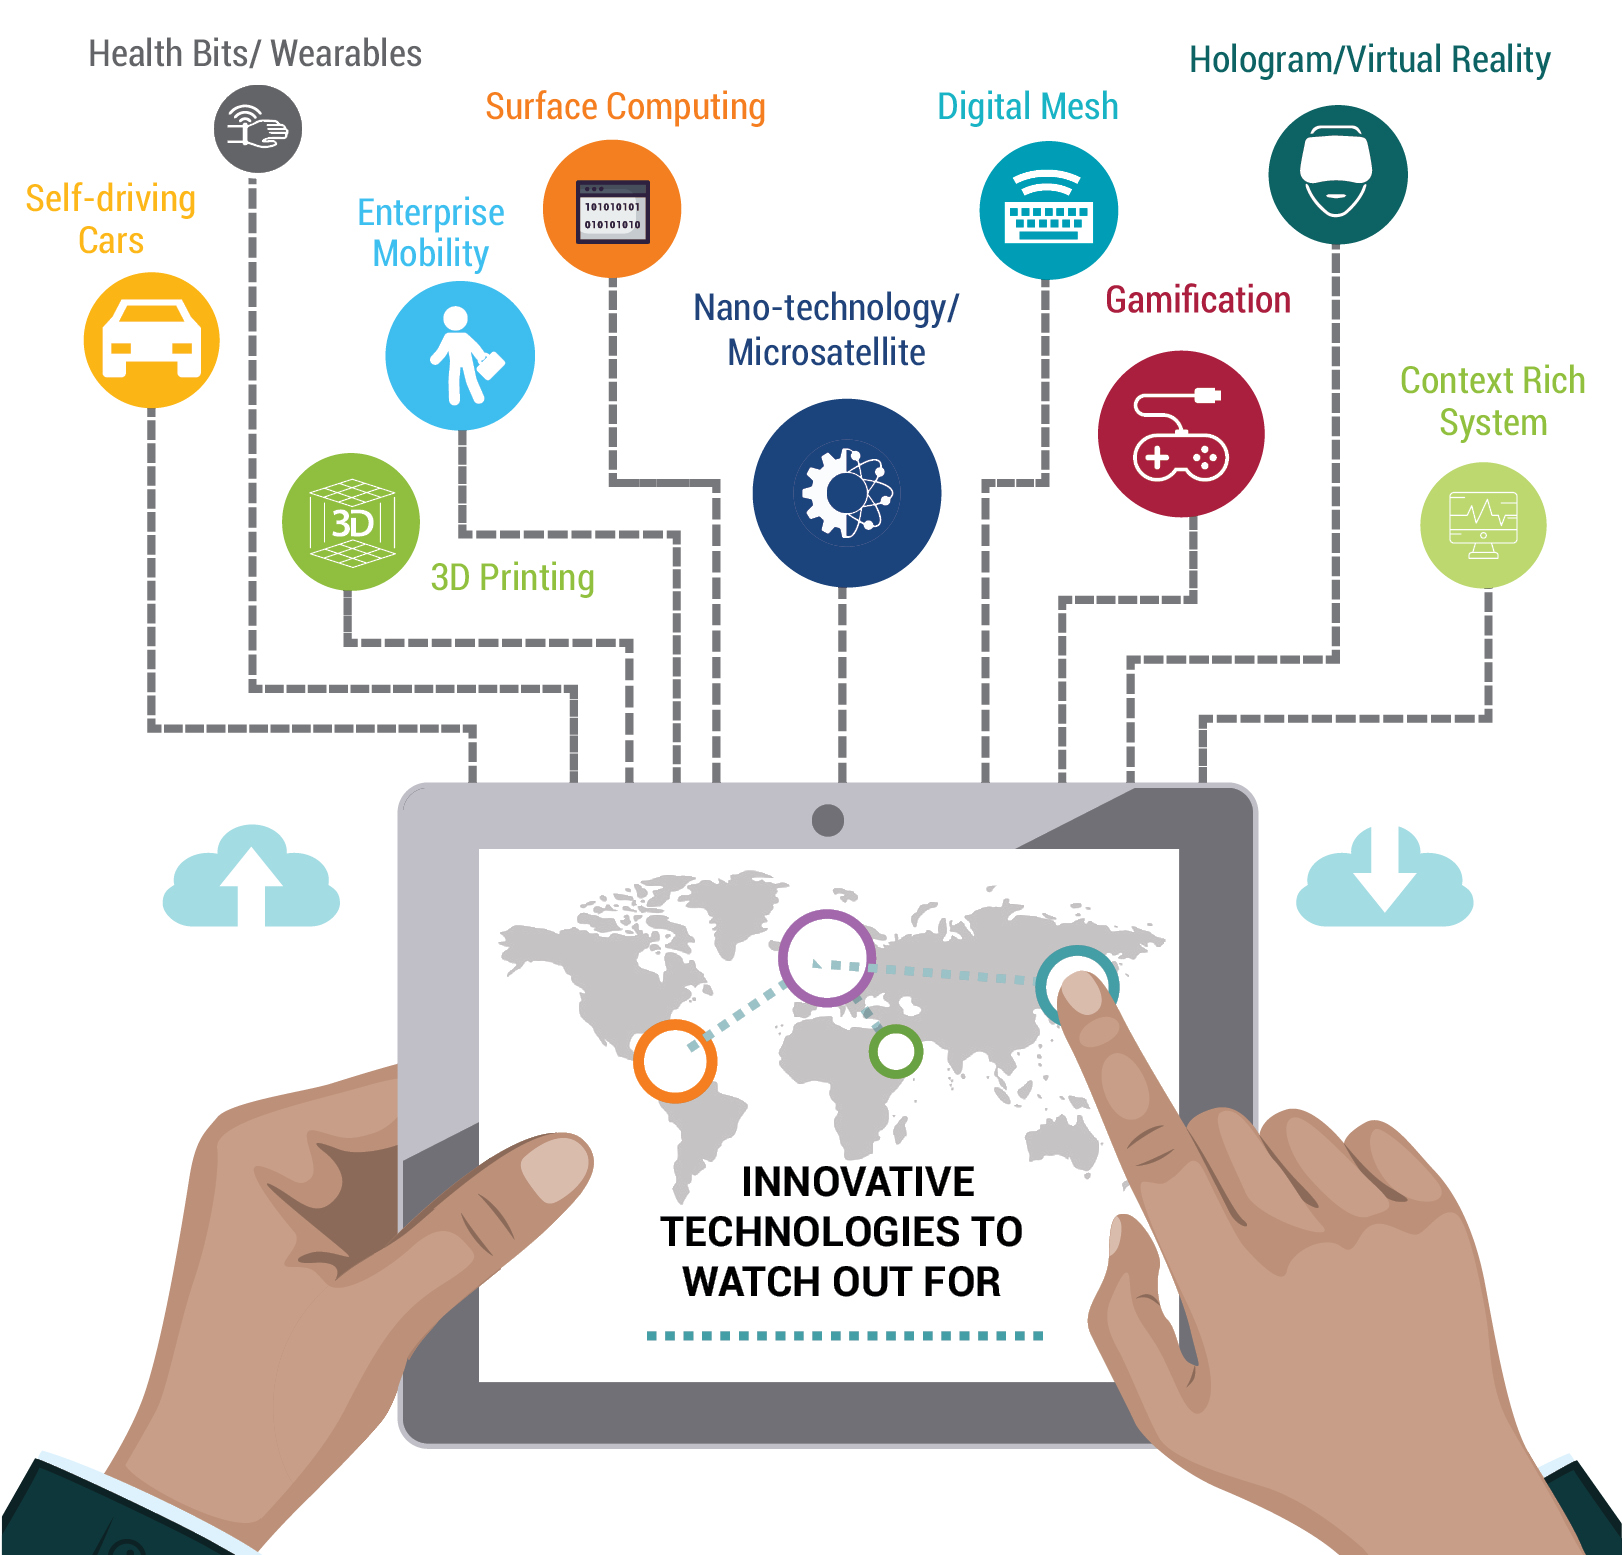 Innovative Technologies to Watch for - Geospatial Industry